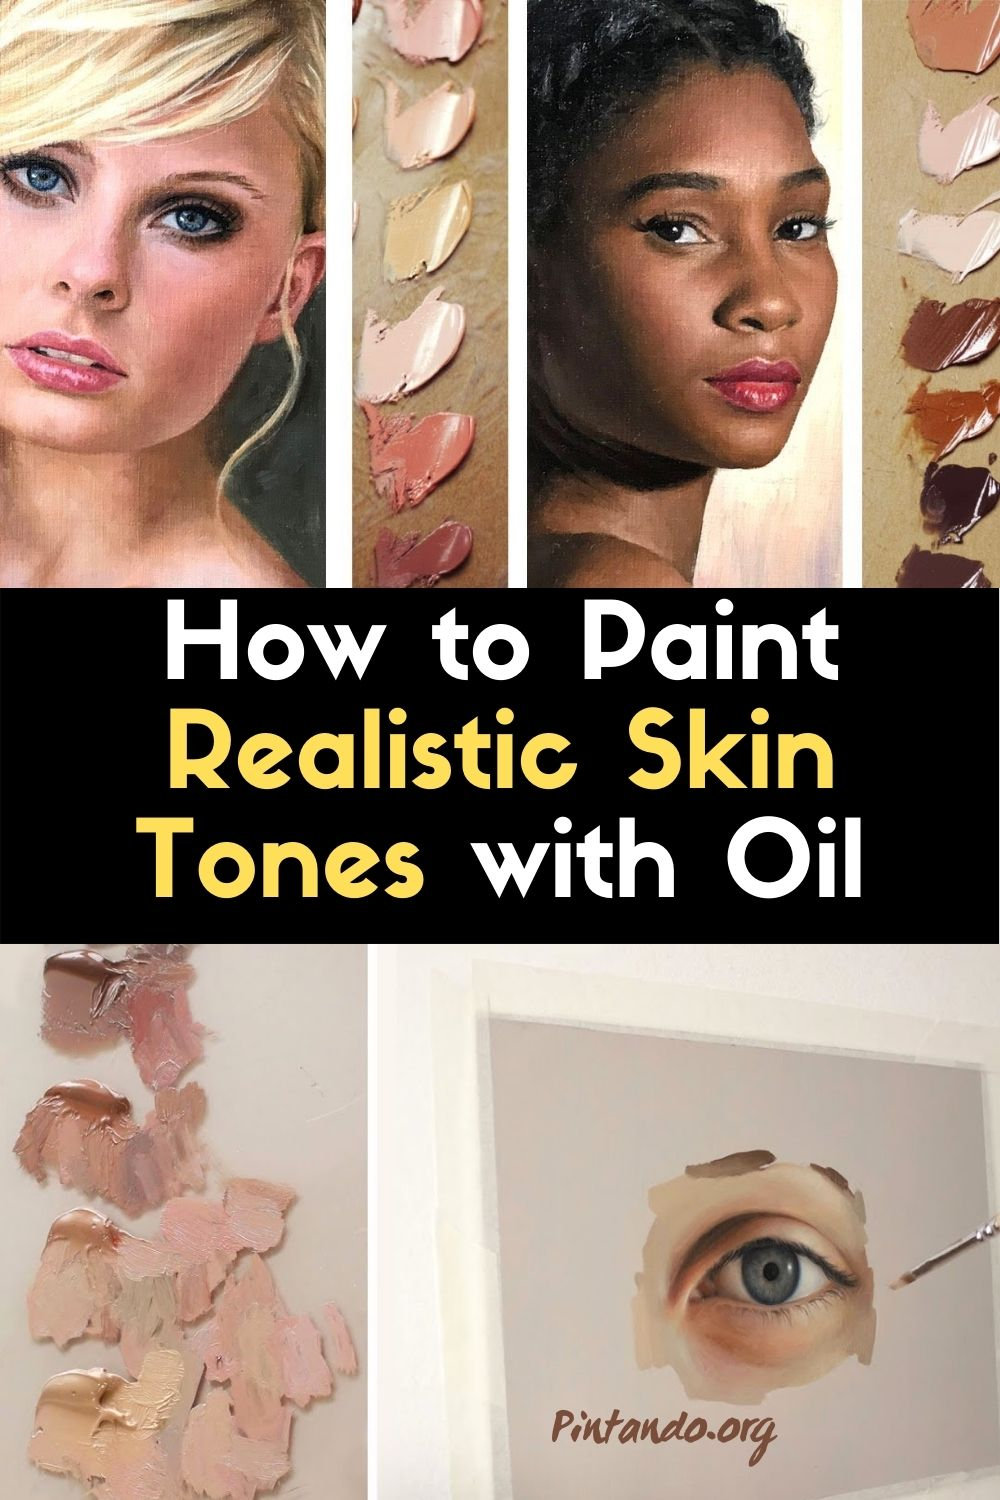 How to Paint Realistic Skin Tones with Oil